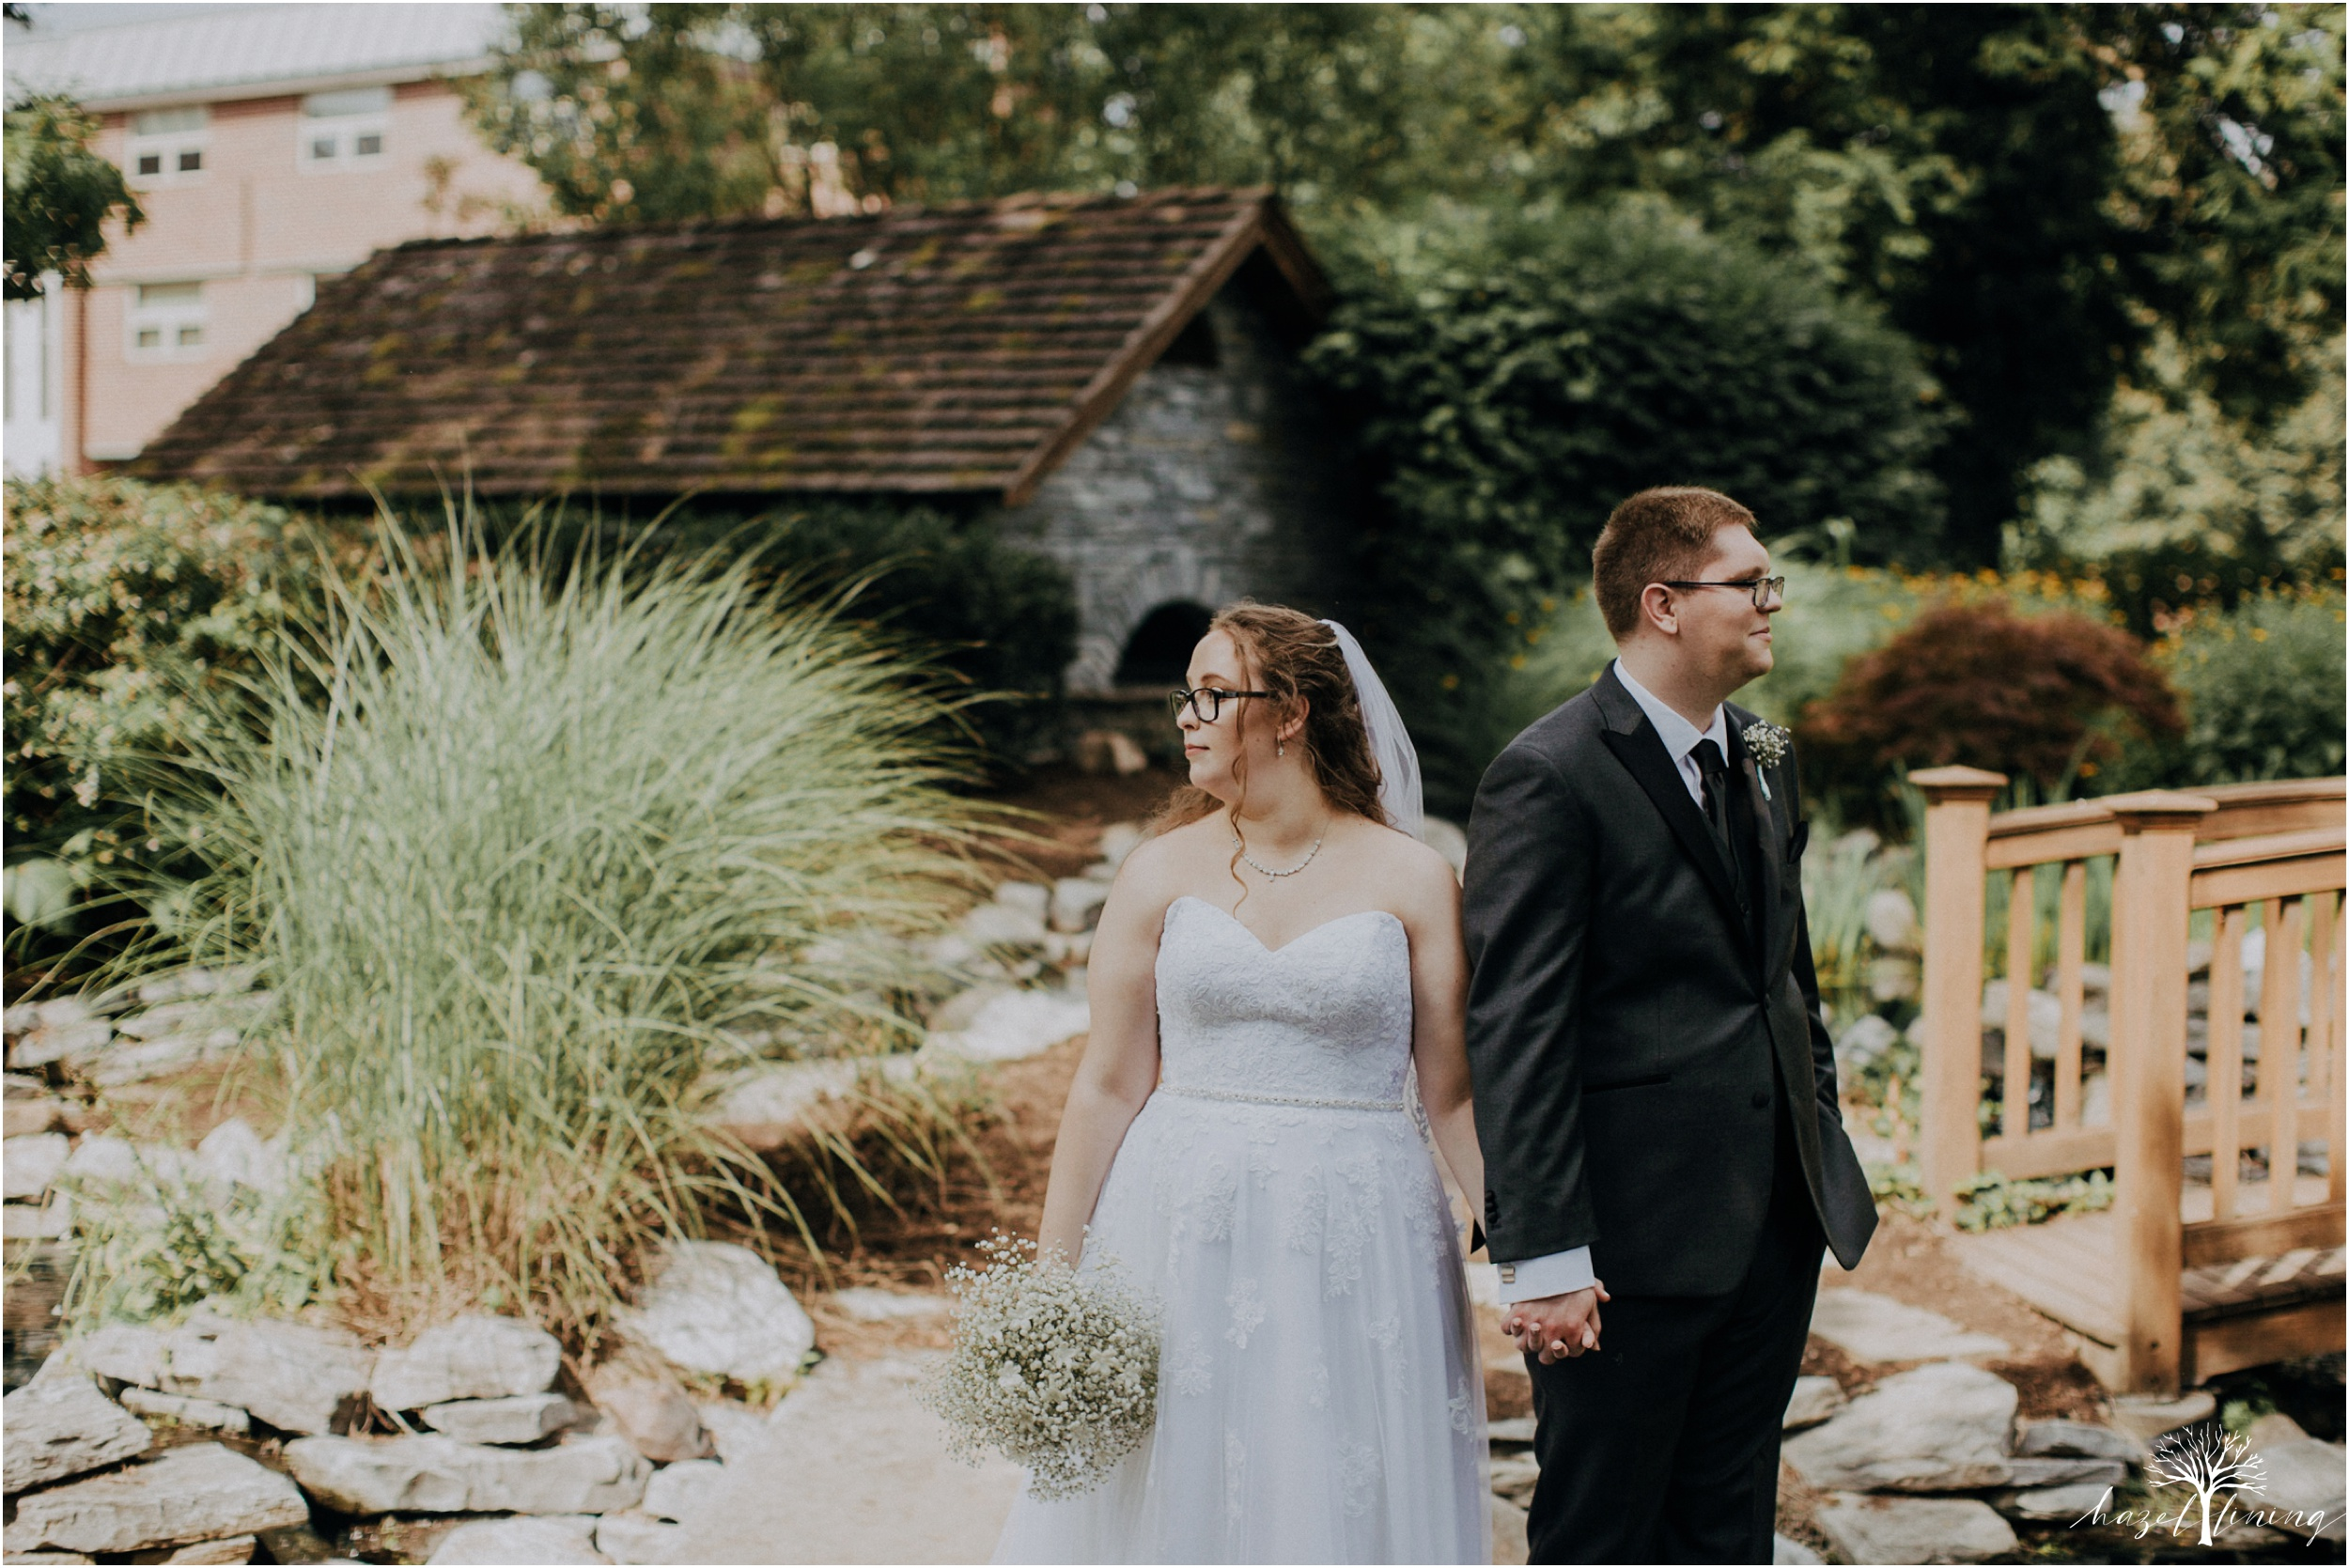 laura-zach-mccaskill-harmony-hall-lebanon-valley-college-summer-wedding-hazel-lining-photography-destination-elopement-wedding-engagement-photography_0091.jpg